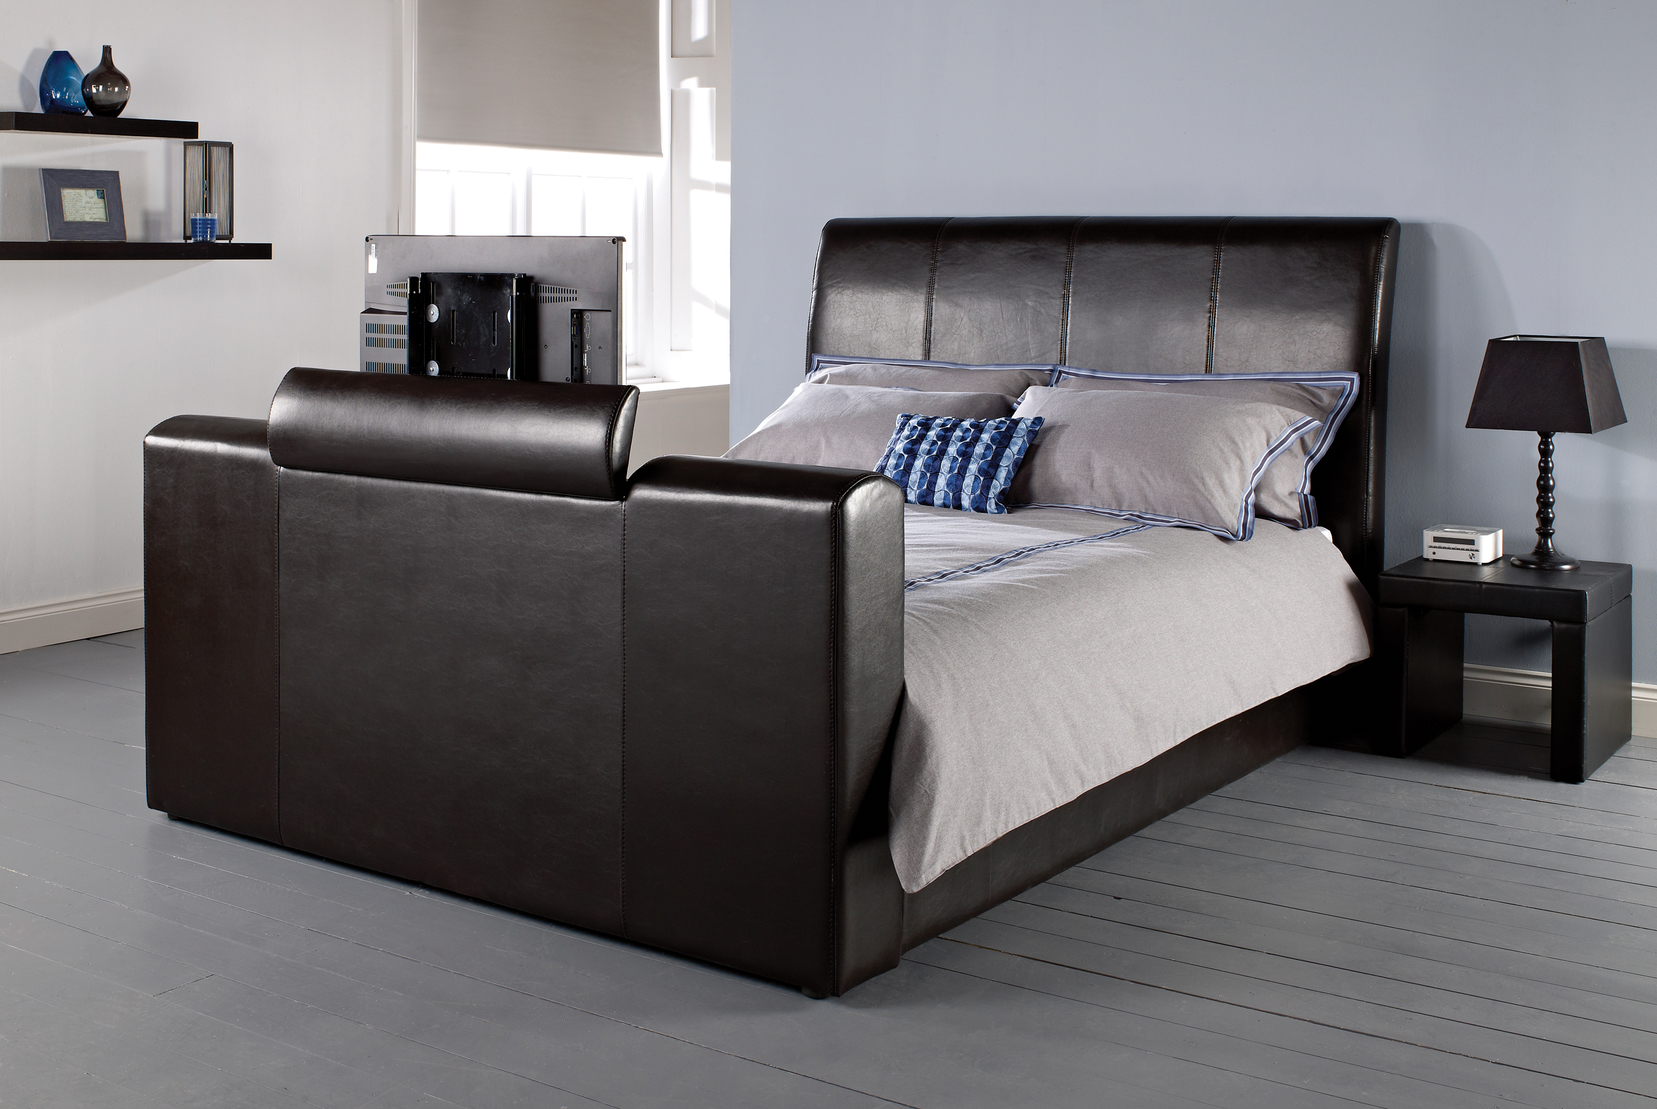 MANHATTAN TV BED DOUBLE 4'6''.